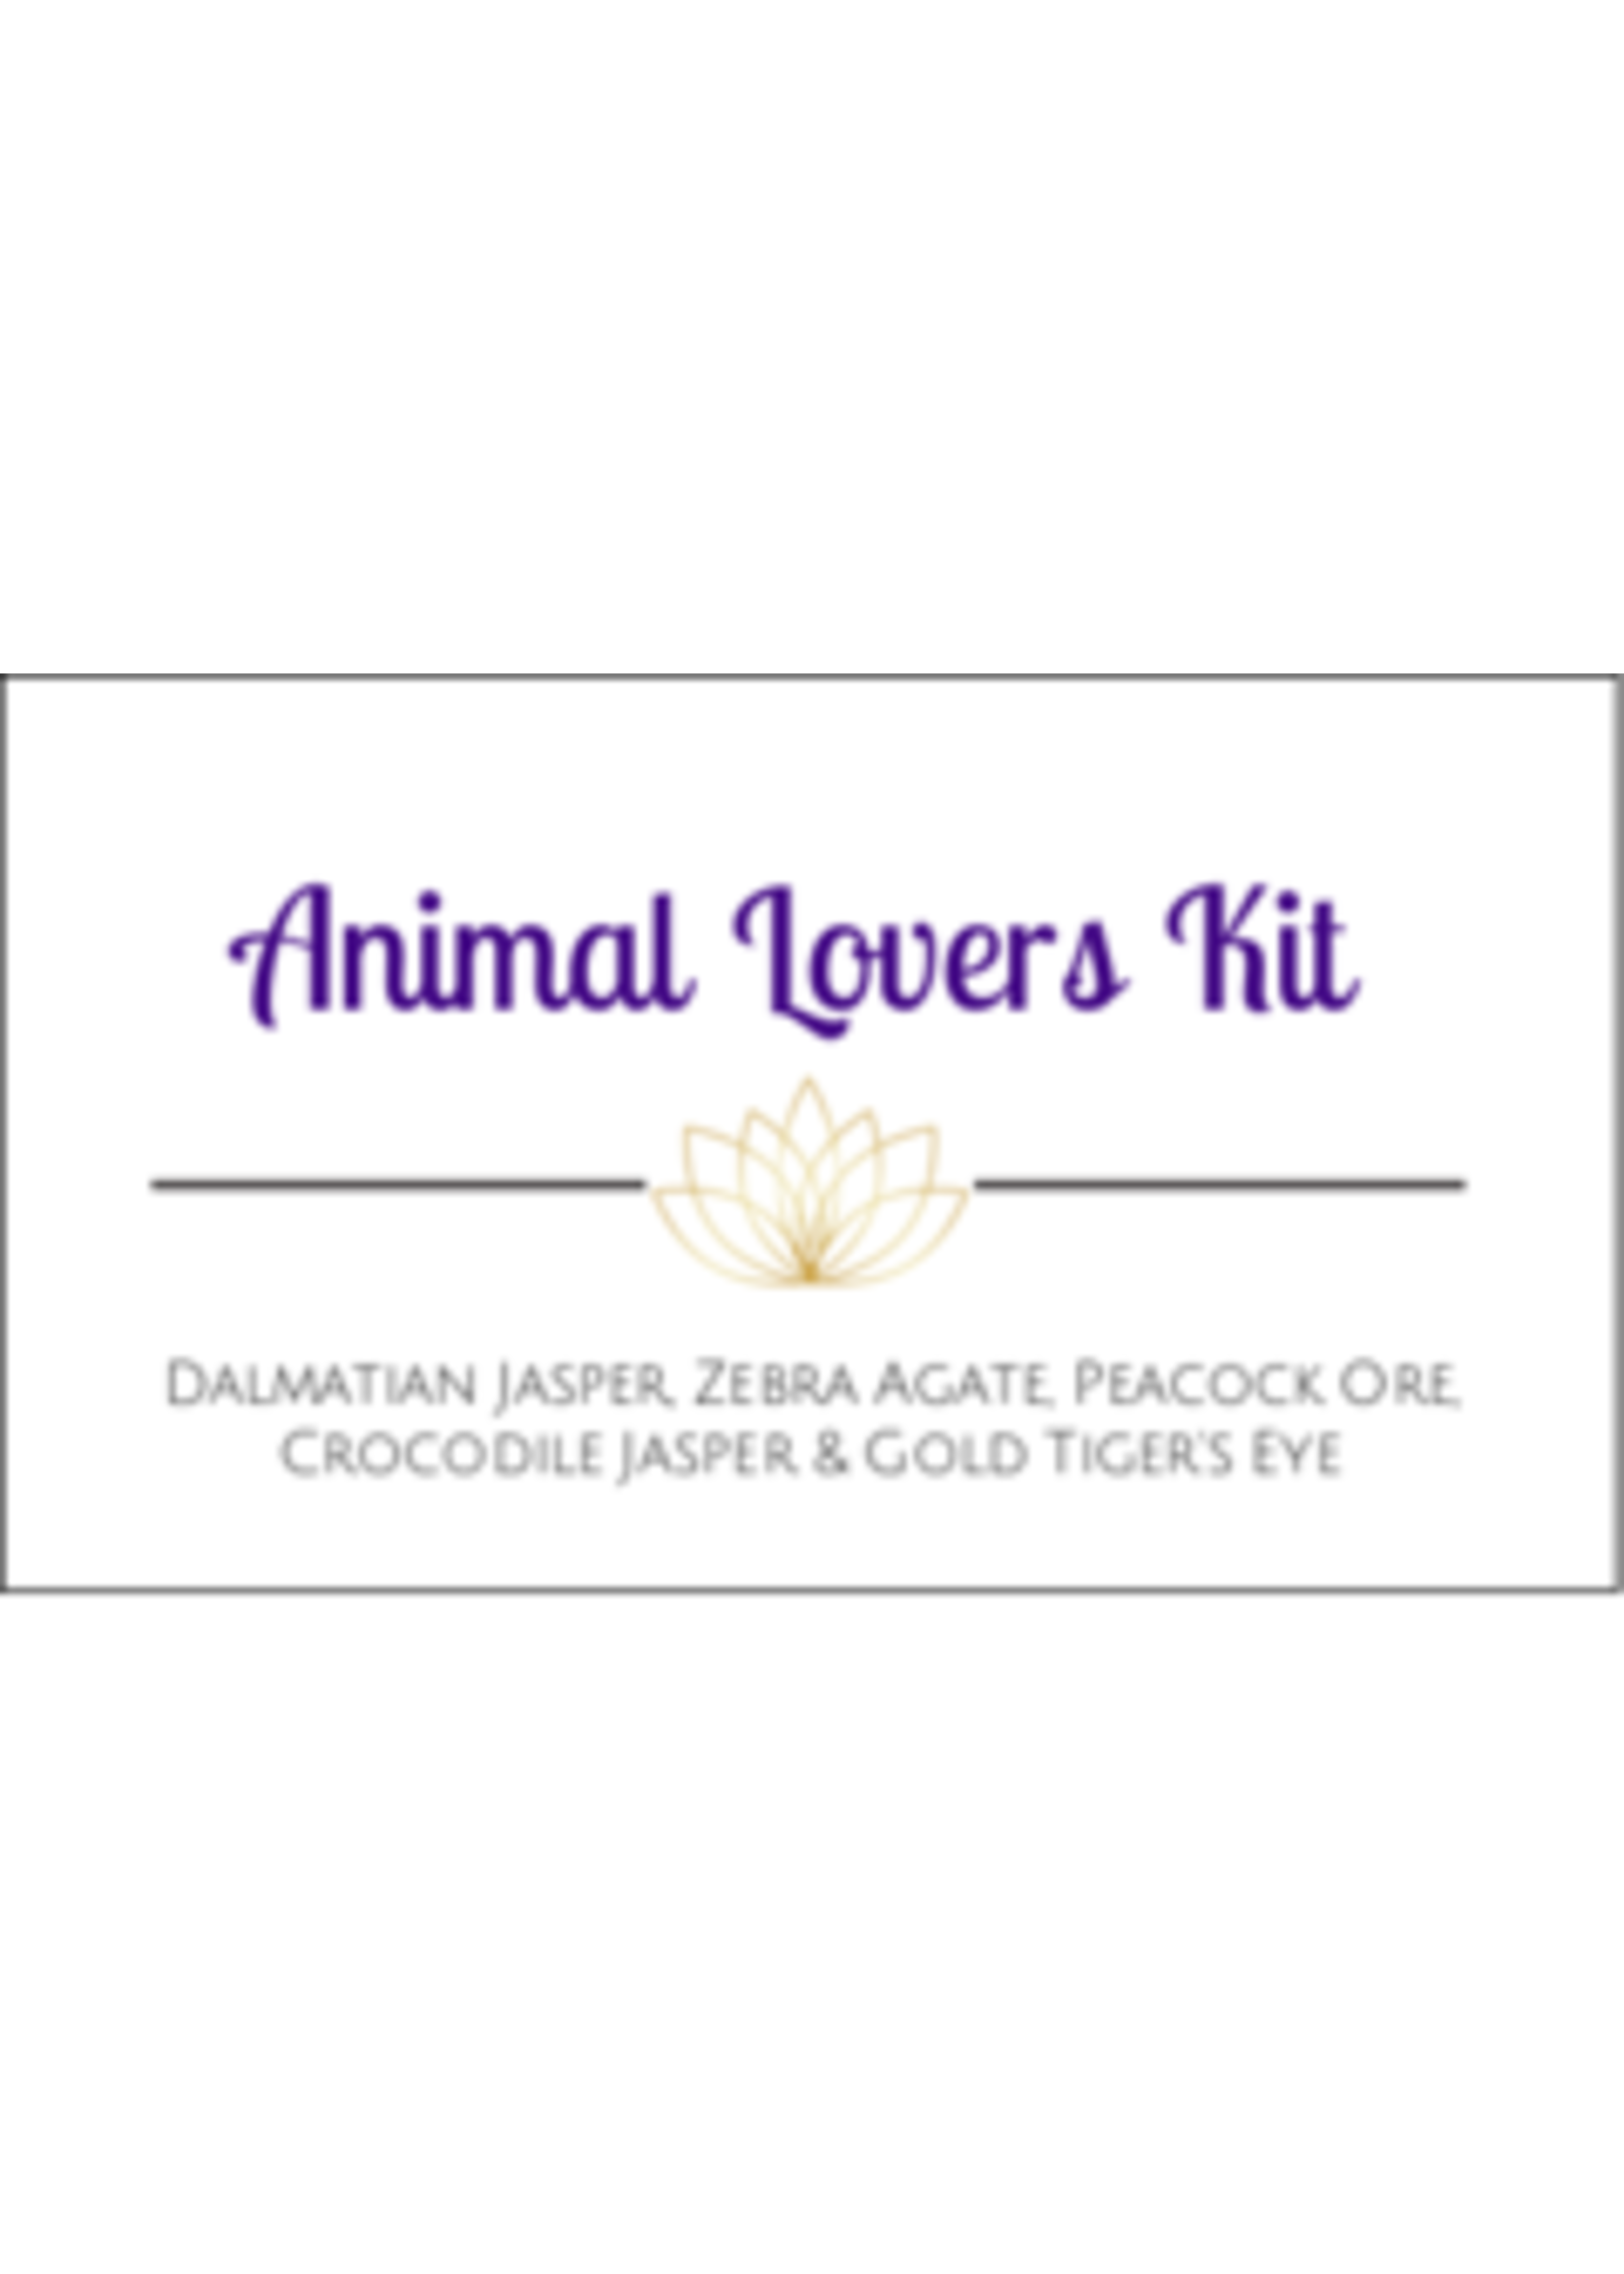 Animal Lovers Crystal Kit Cards - Box of 100